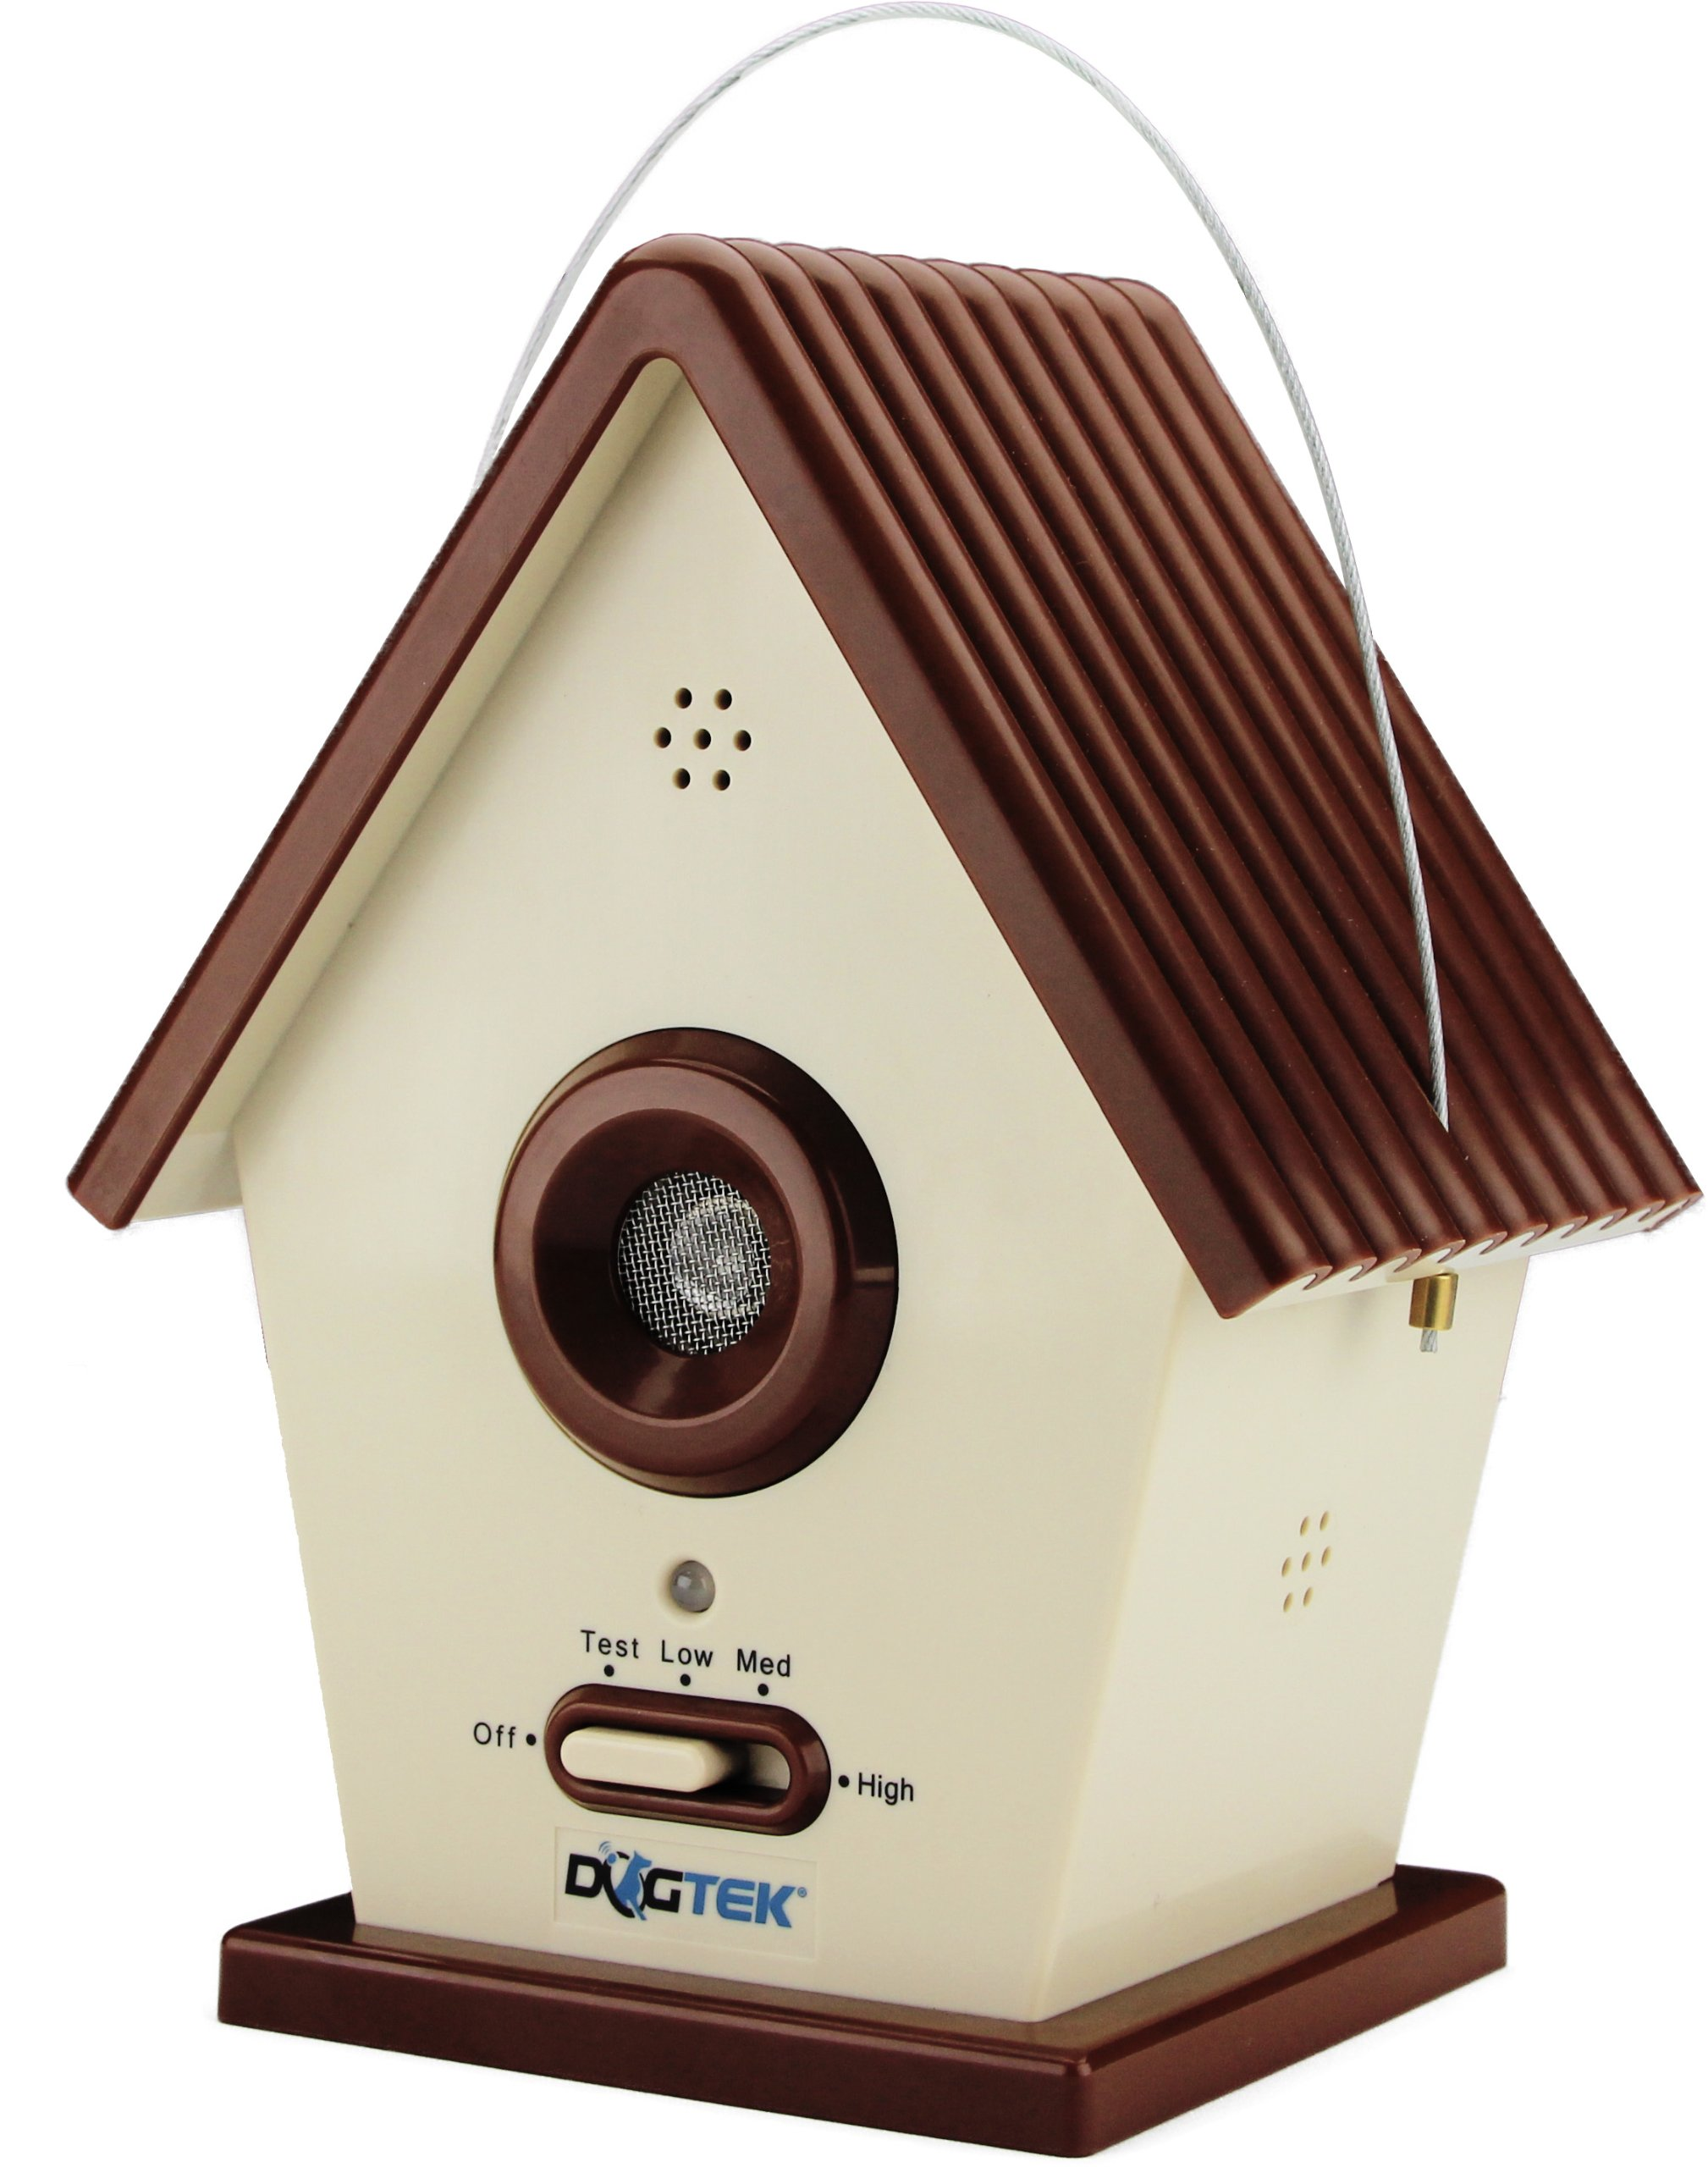 Dogtek Sonic Control Outdoor Indoor